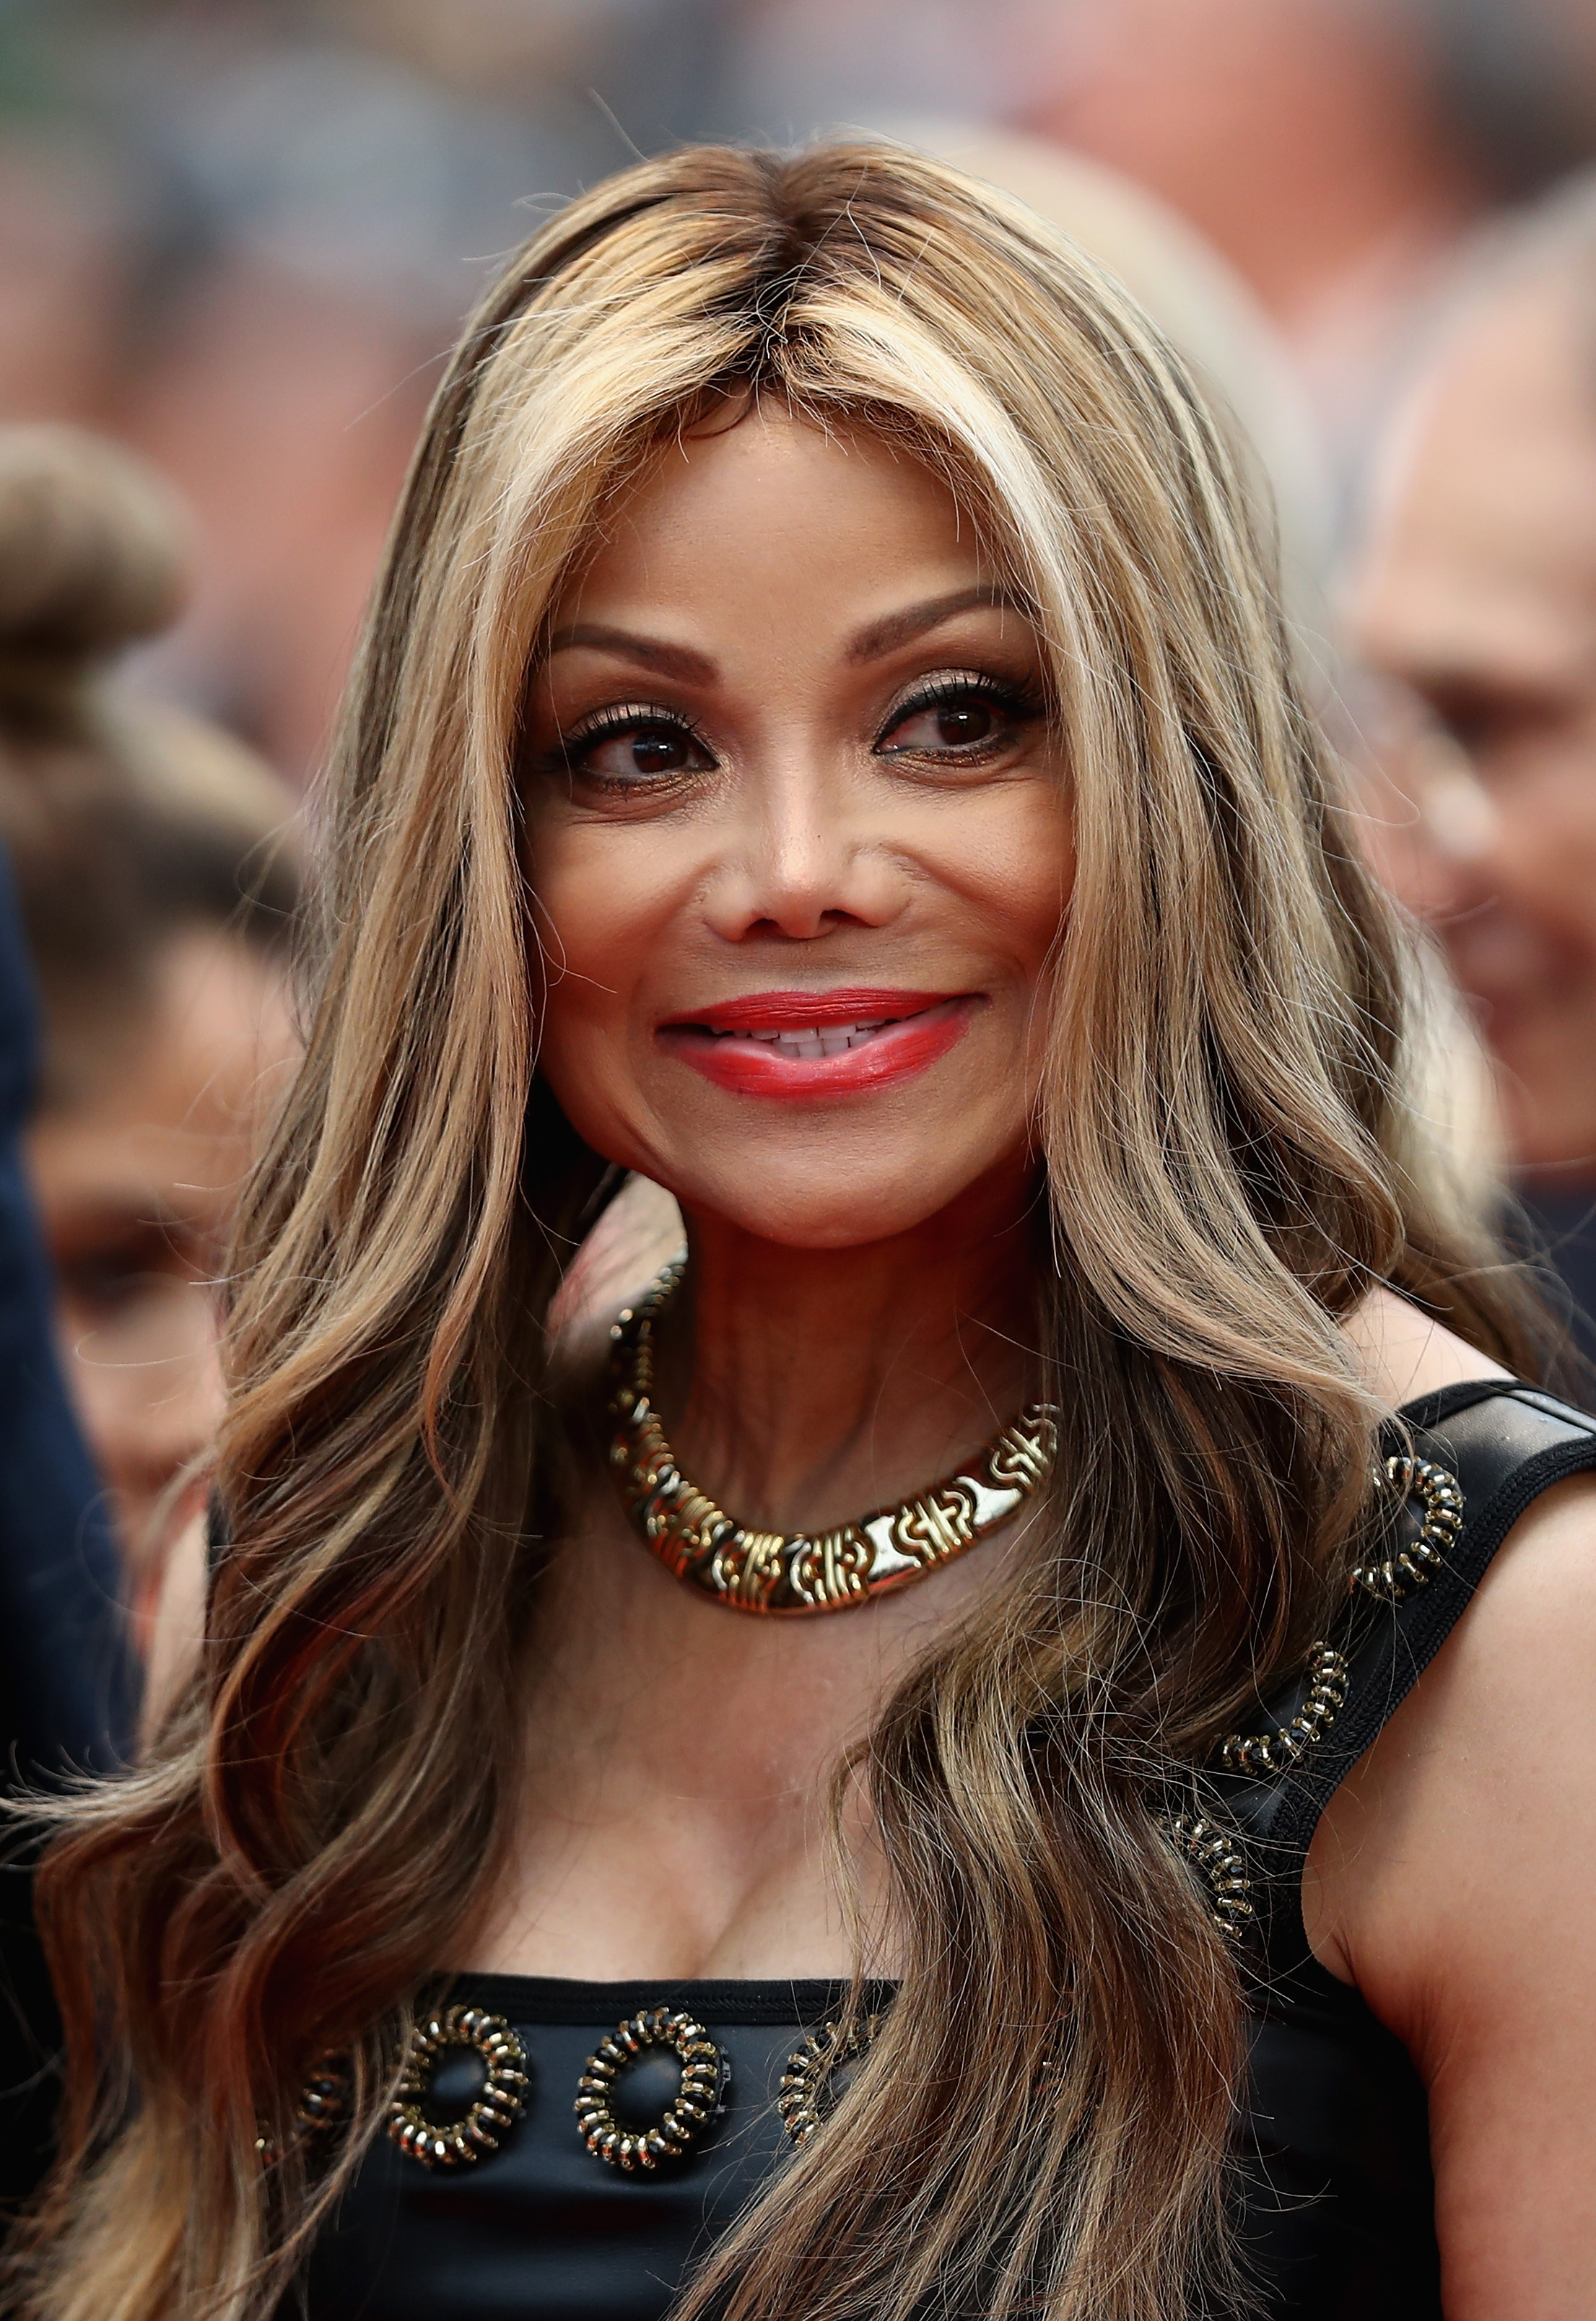 La Toya Jackson attends the screening of 'Burning' during the 71st annual Cannes Film Festival at Palais des Festivals on May 16, 2018, in Cannes, France. (Getty)